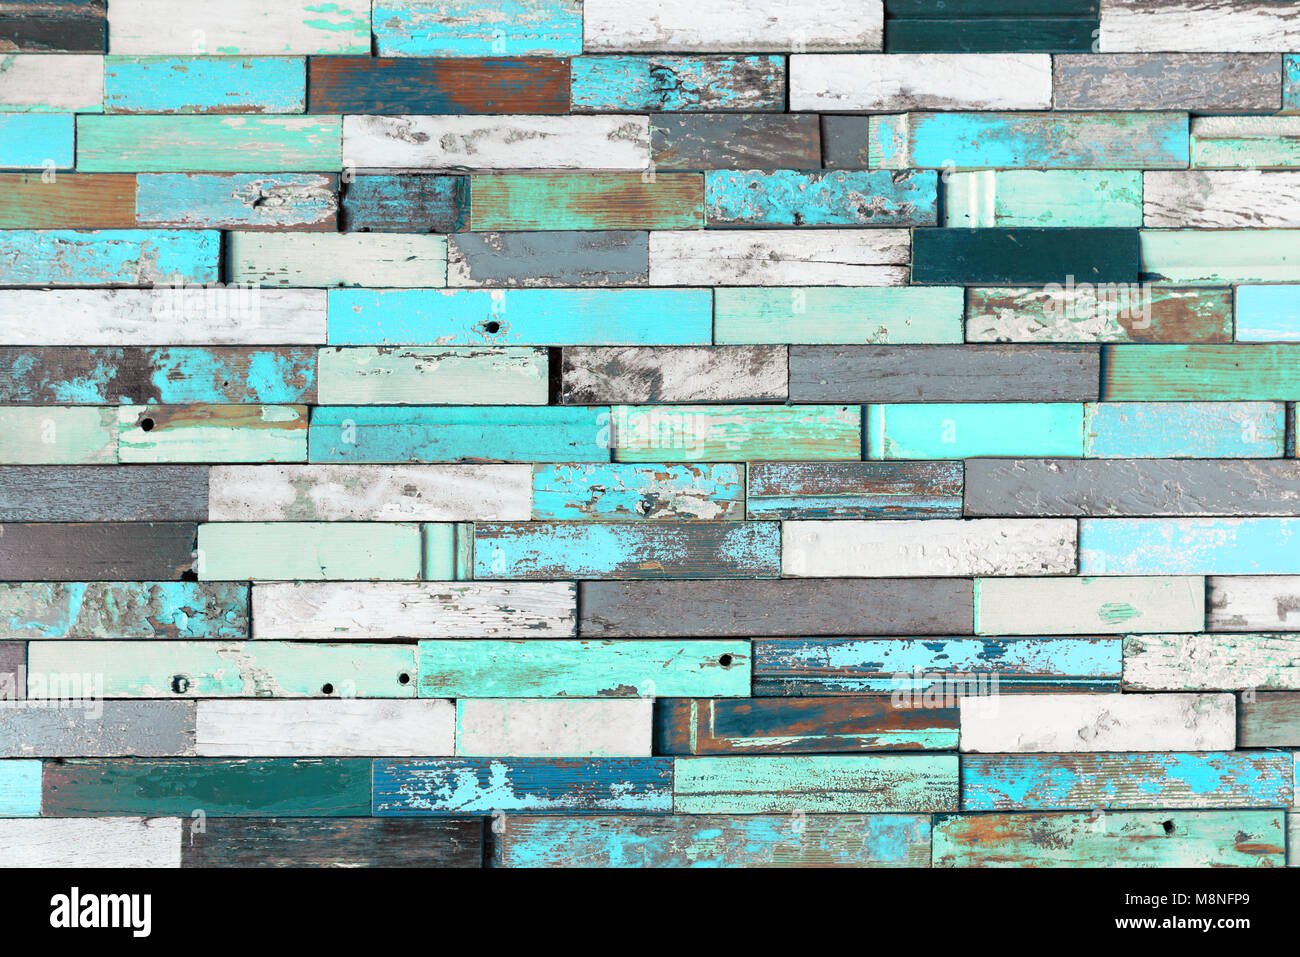 Background of colorful old painted grunge wood planks - Stock Image